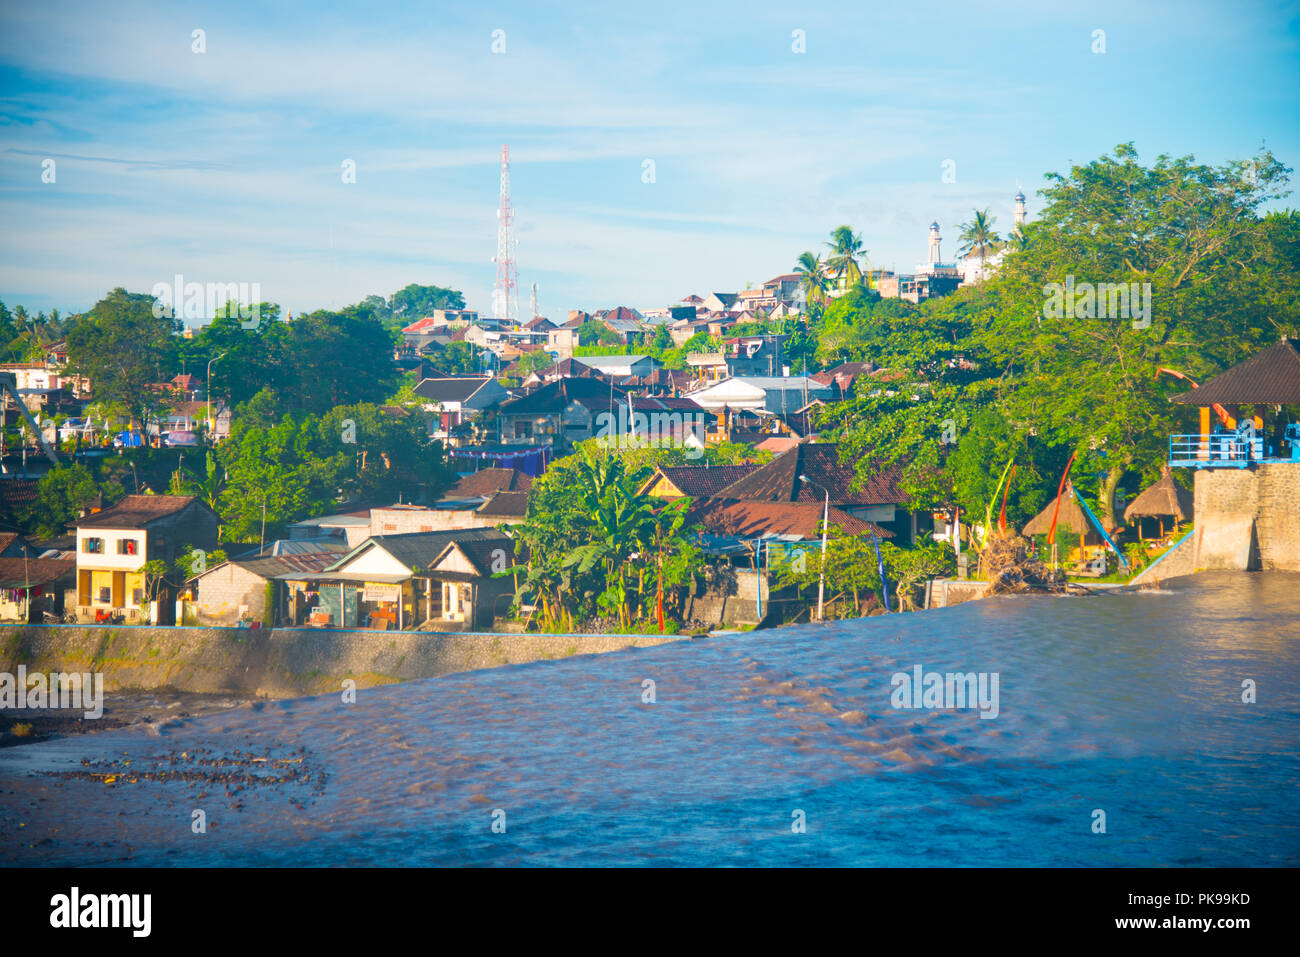 Residential Area Of The Bali Island Indonesia Bali Is An